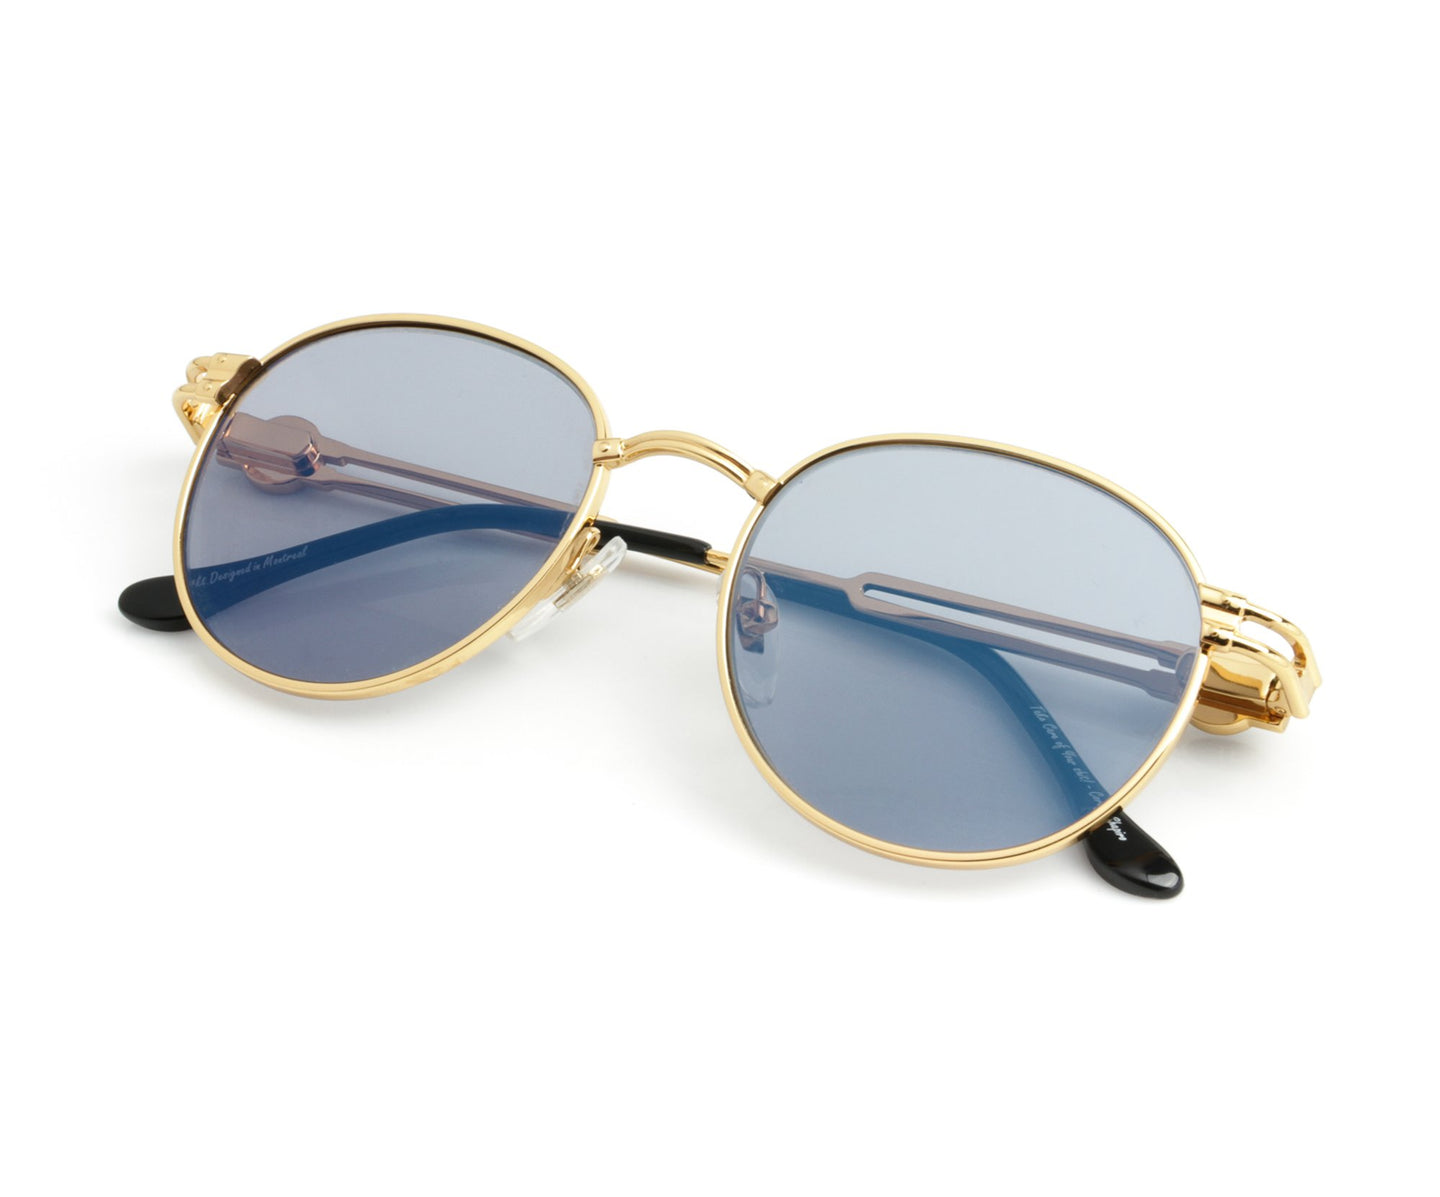 VF Tokyo A5 24KT Gold (Gray Flash Blue) Thumb, VF Masterpiece , glasses frames, eyeglasses online, eyeglass frames, mens glasses, womens glasses, buy glasses online, designer eyeglasses, vintage sunglasses, retro sunglasses, vintage glasses, sunglass, eyeglass, glasses, lens, vintage frames company, vf